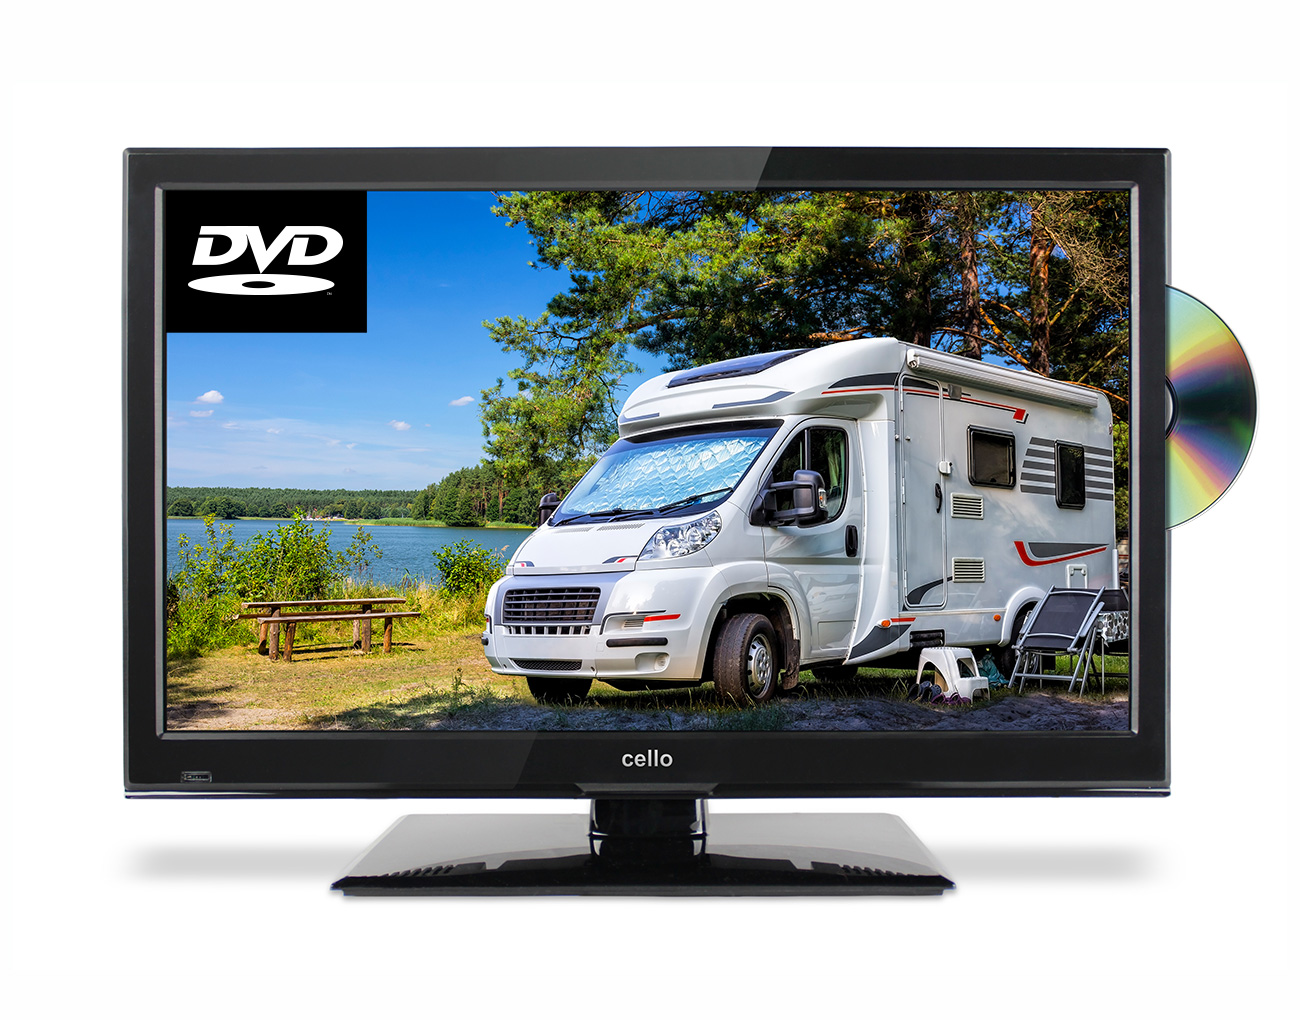 Cello C22230f 22 Traveller Tv With Built In Dvd Player G Craggs Ltd